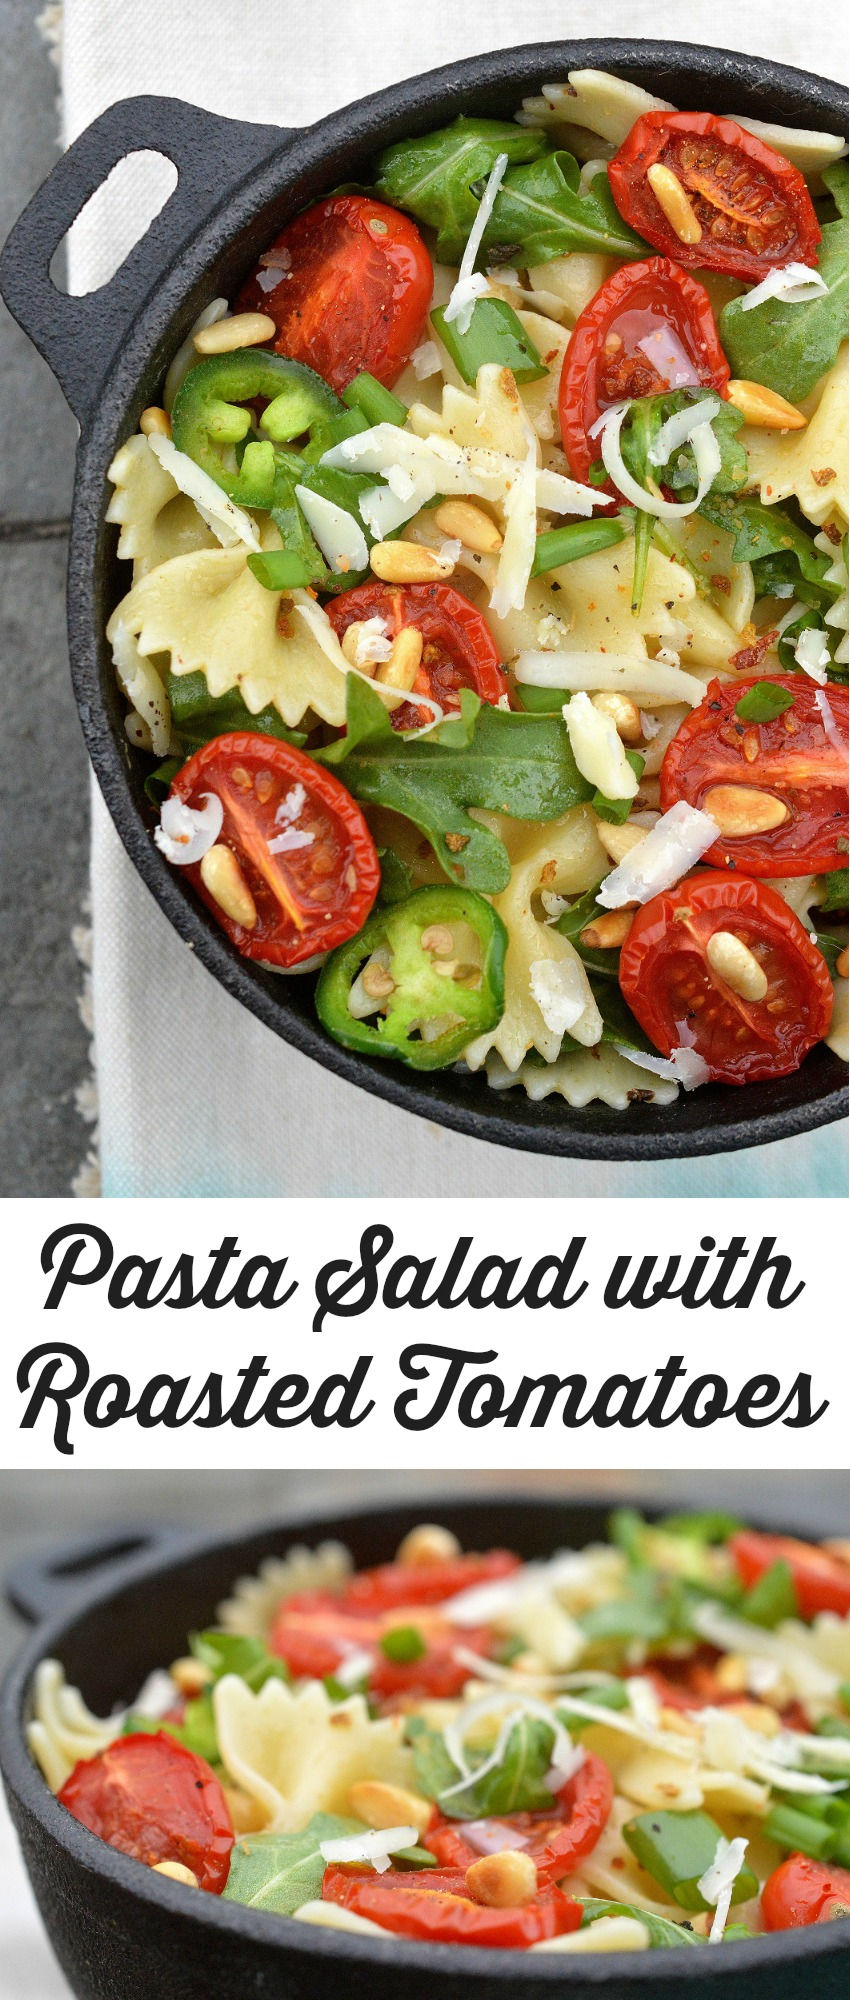 Delicious & Easy pasta Salad with Roasted Tomatoes Parmesan Cheese Pine Nuts Arugula & Jalapenos in a garlic oil....Mmmm!